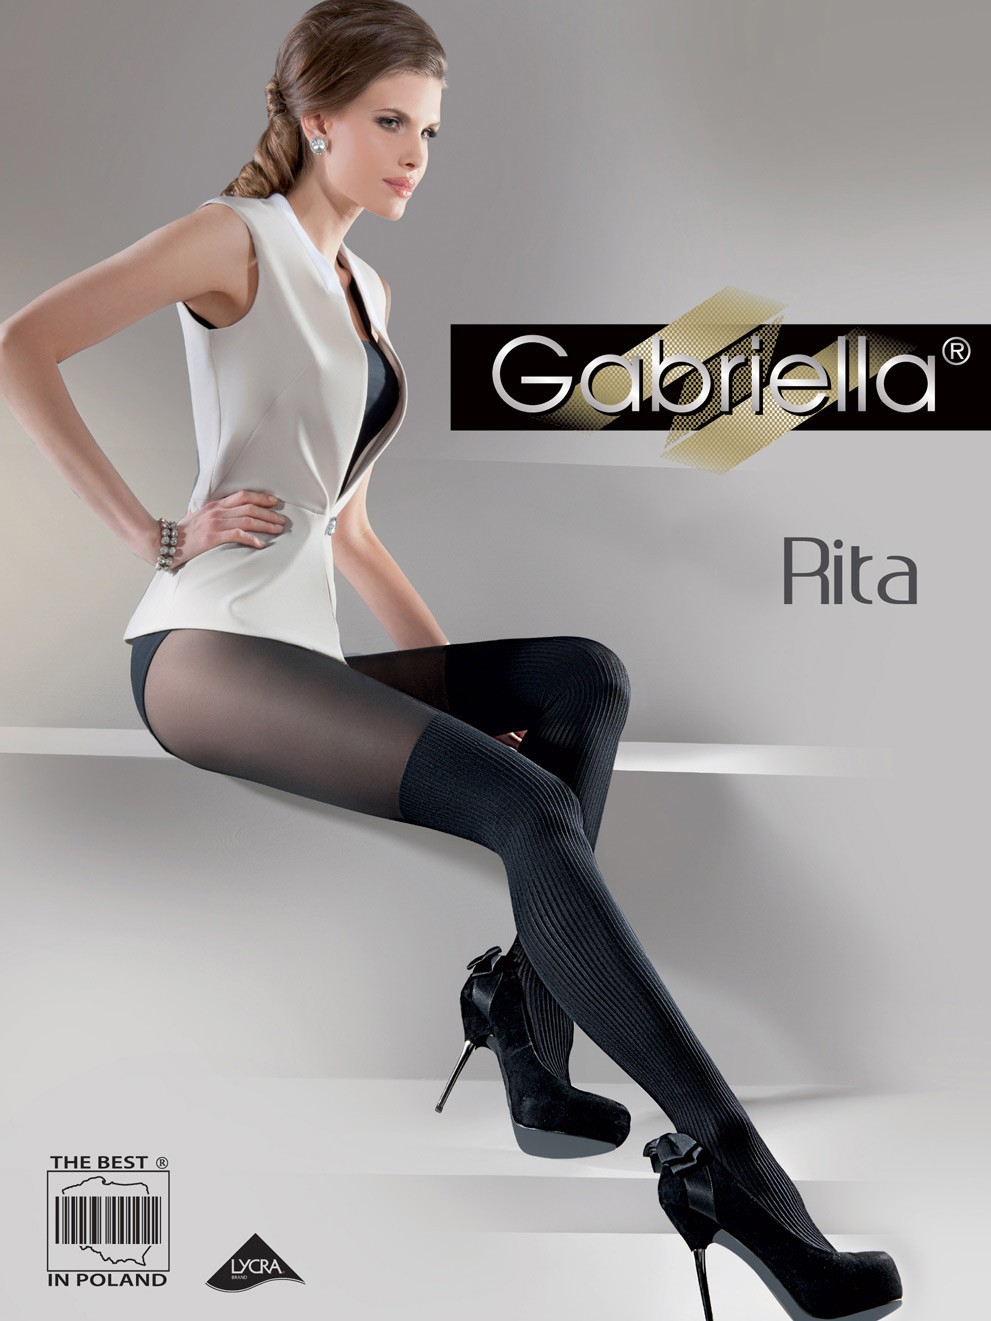 Rita Exclusive Fancy Patterned Tights With Fabulous Decorative Motif 40 Denier by Gabriella